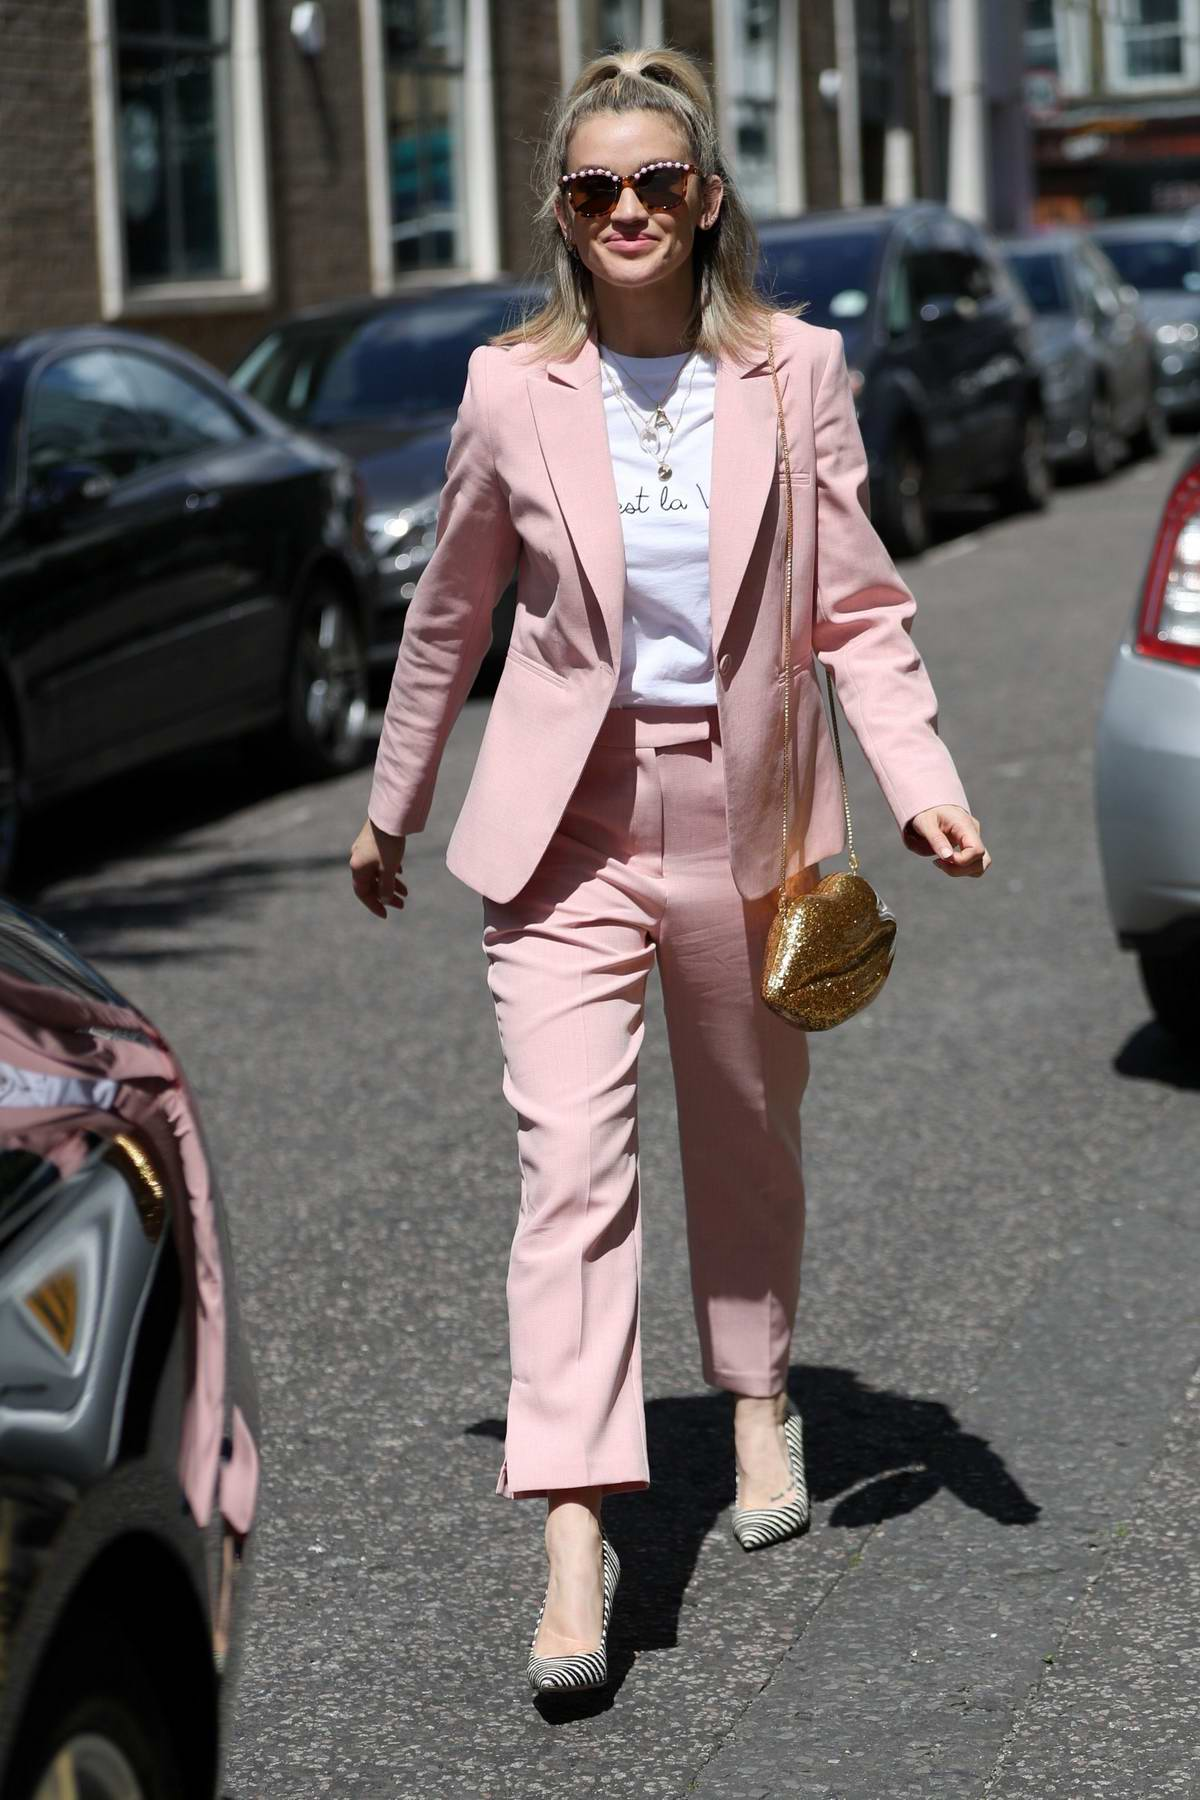 Ashley Roberts looks stylish in a pink suit as she leaves BBC's Saturday Kitchen TV Show in London, UK